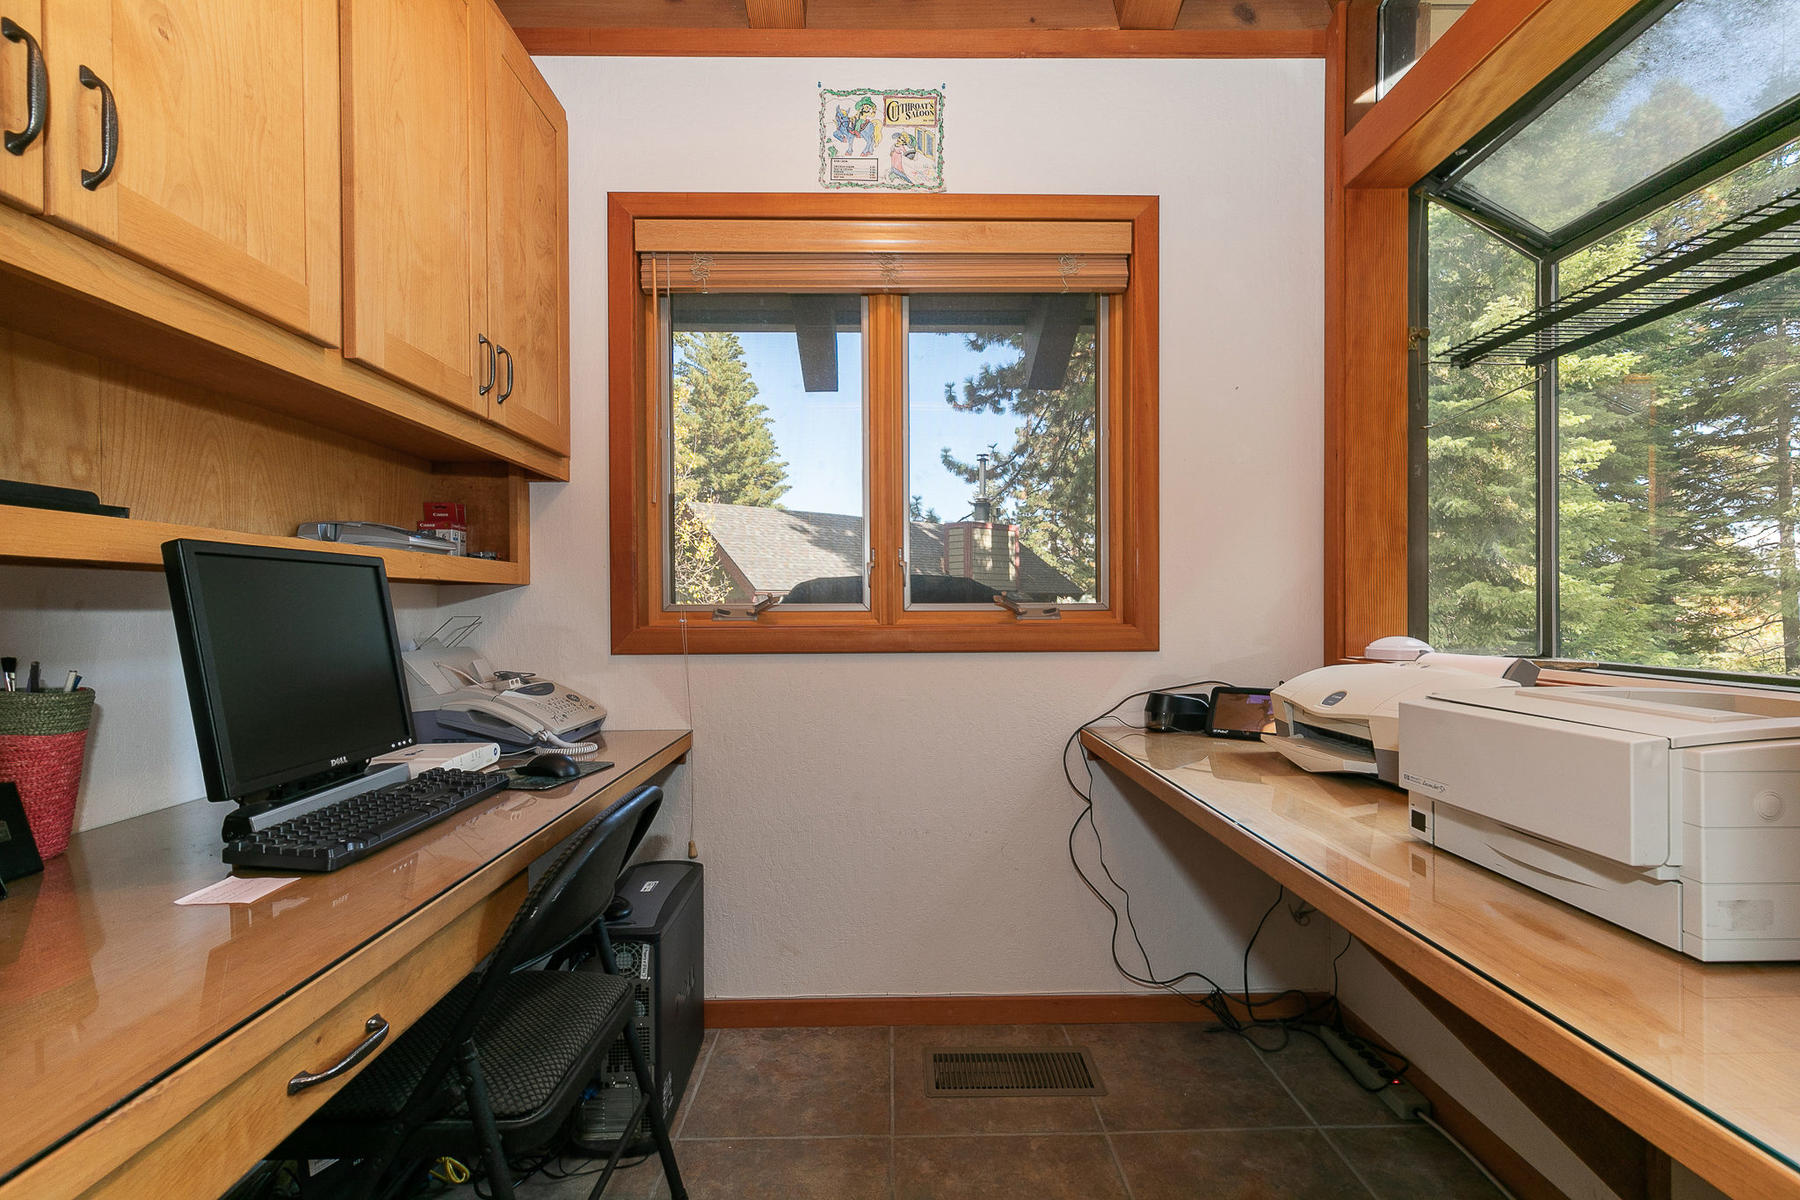 Additional photo for property listing at 350 Rim Drive, Tahoe Vista, Ca 96148 350 Rim Drive Tahoe Vista, California 96148 United States